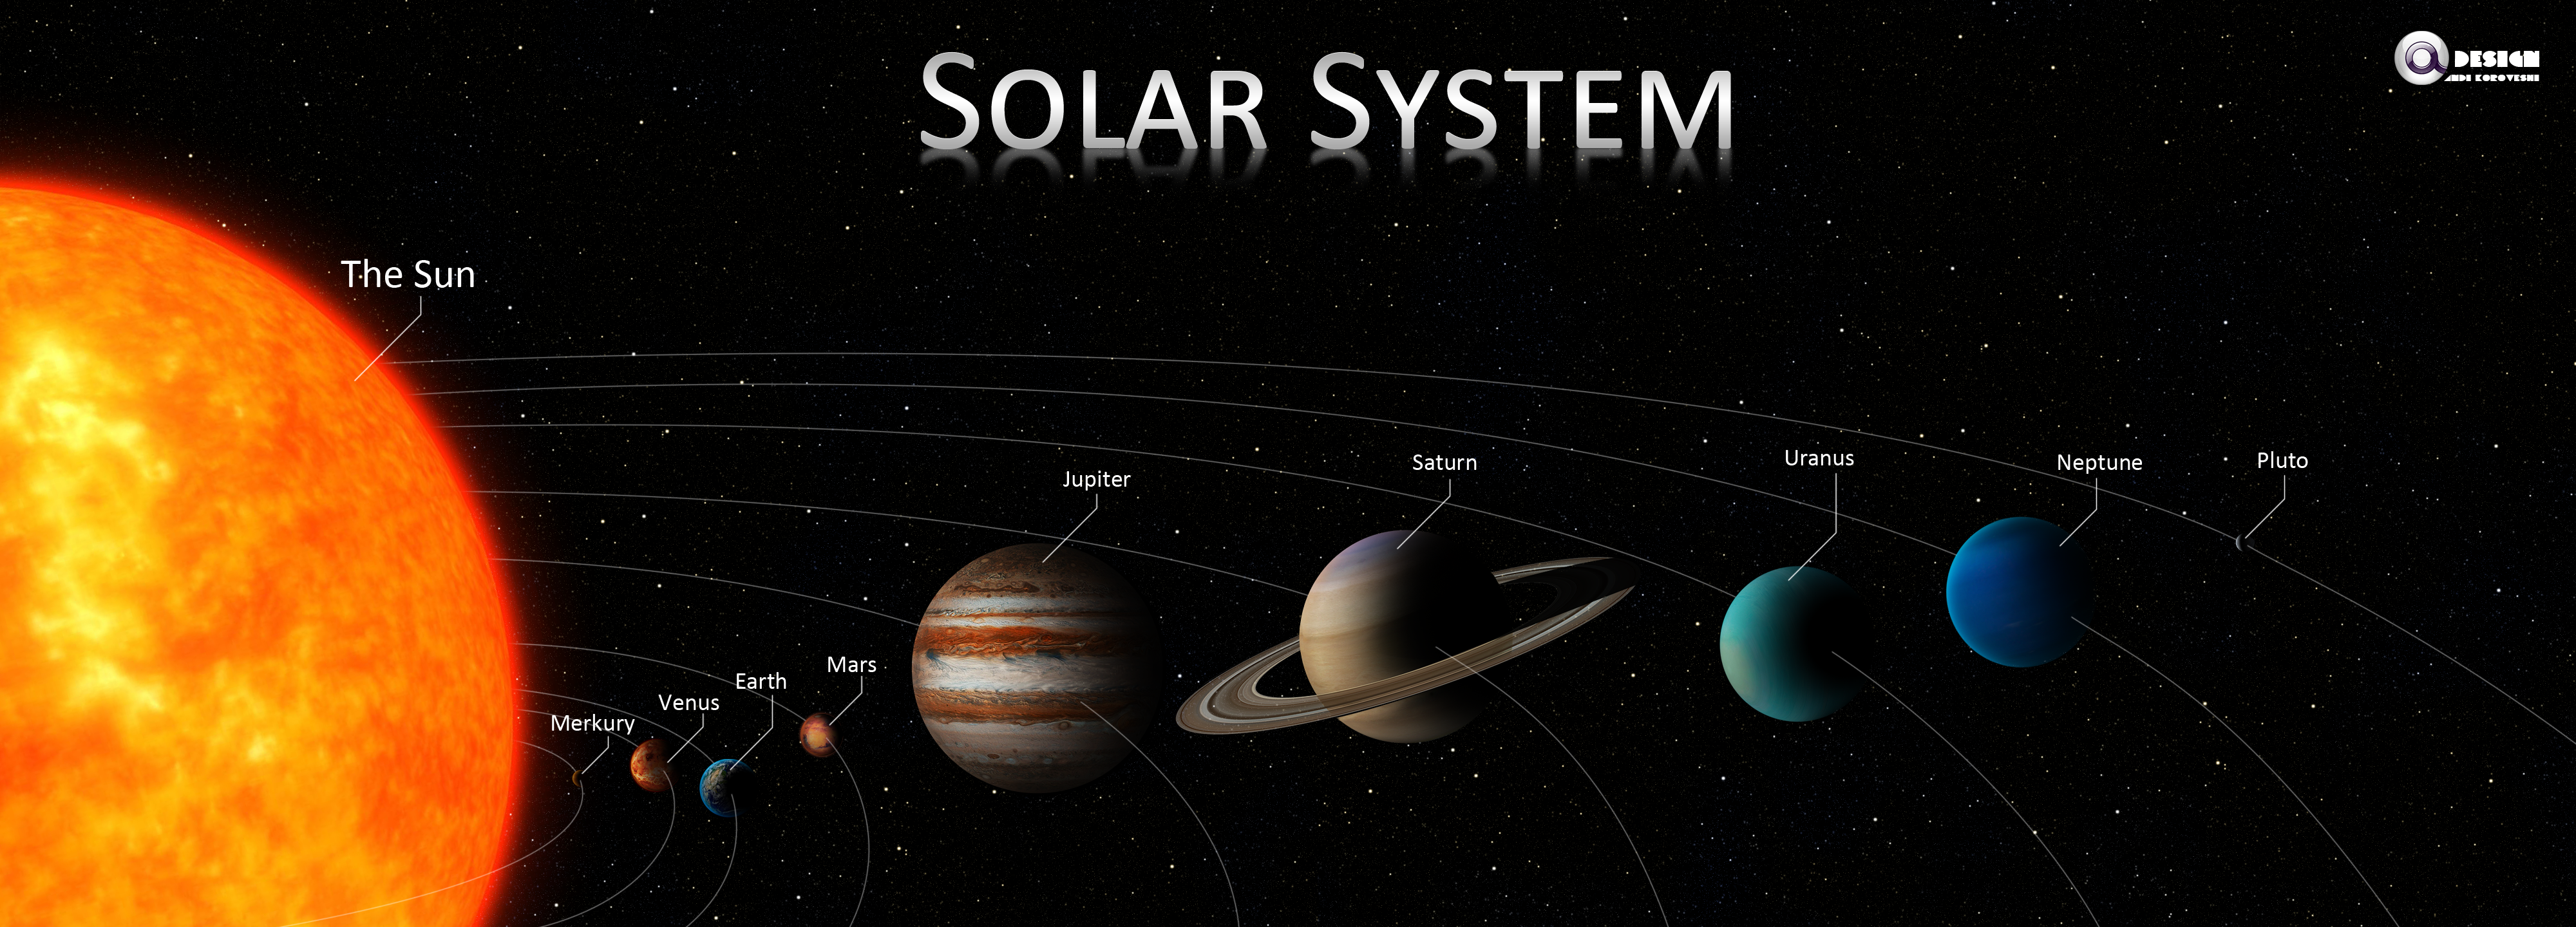 real pictures of the solar system planets - photo #44